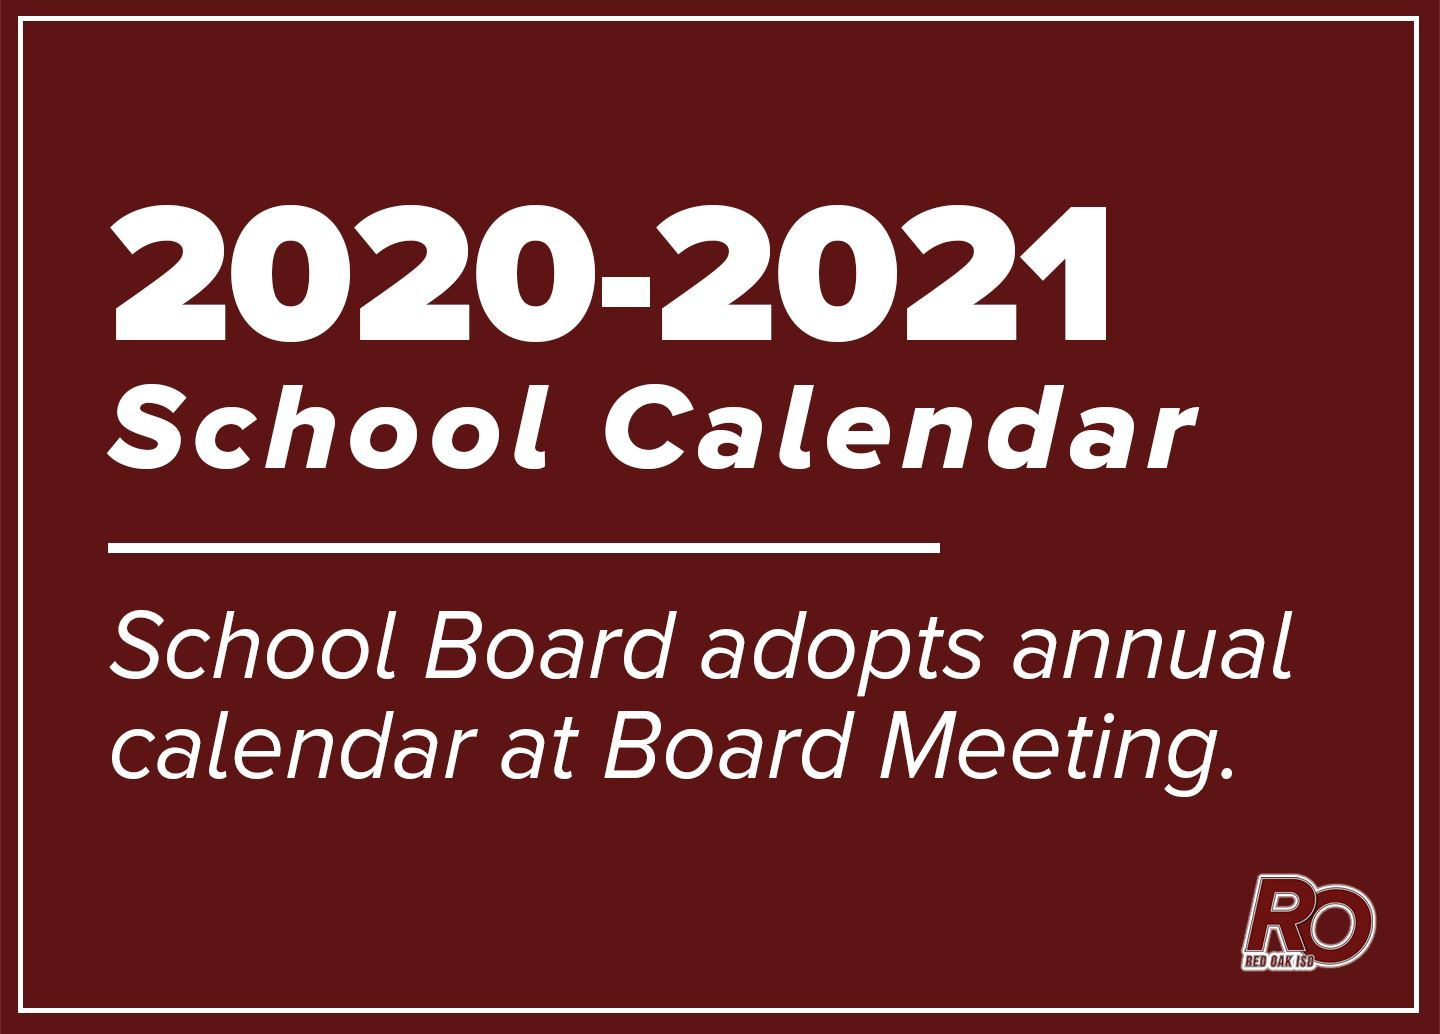 2020-2021 School Calendar adopted by School Board at Feb. 24 meeting